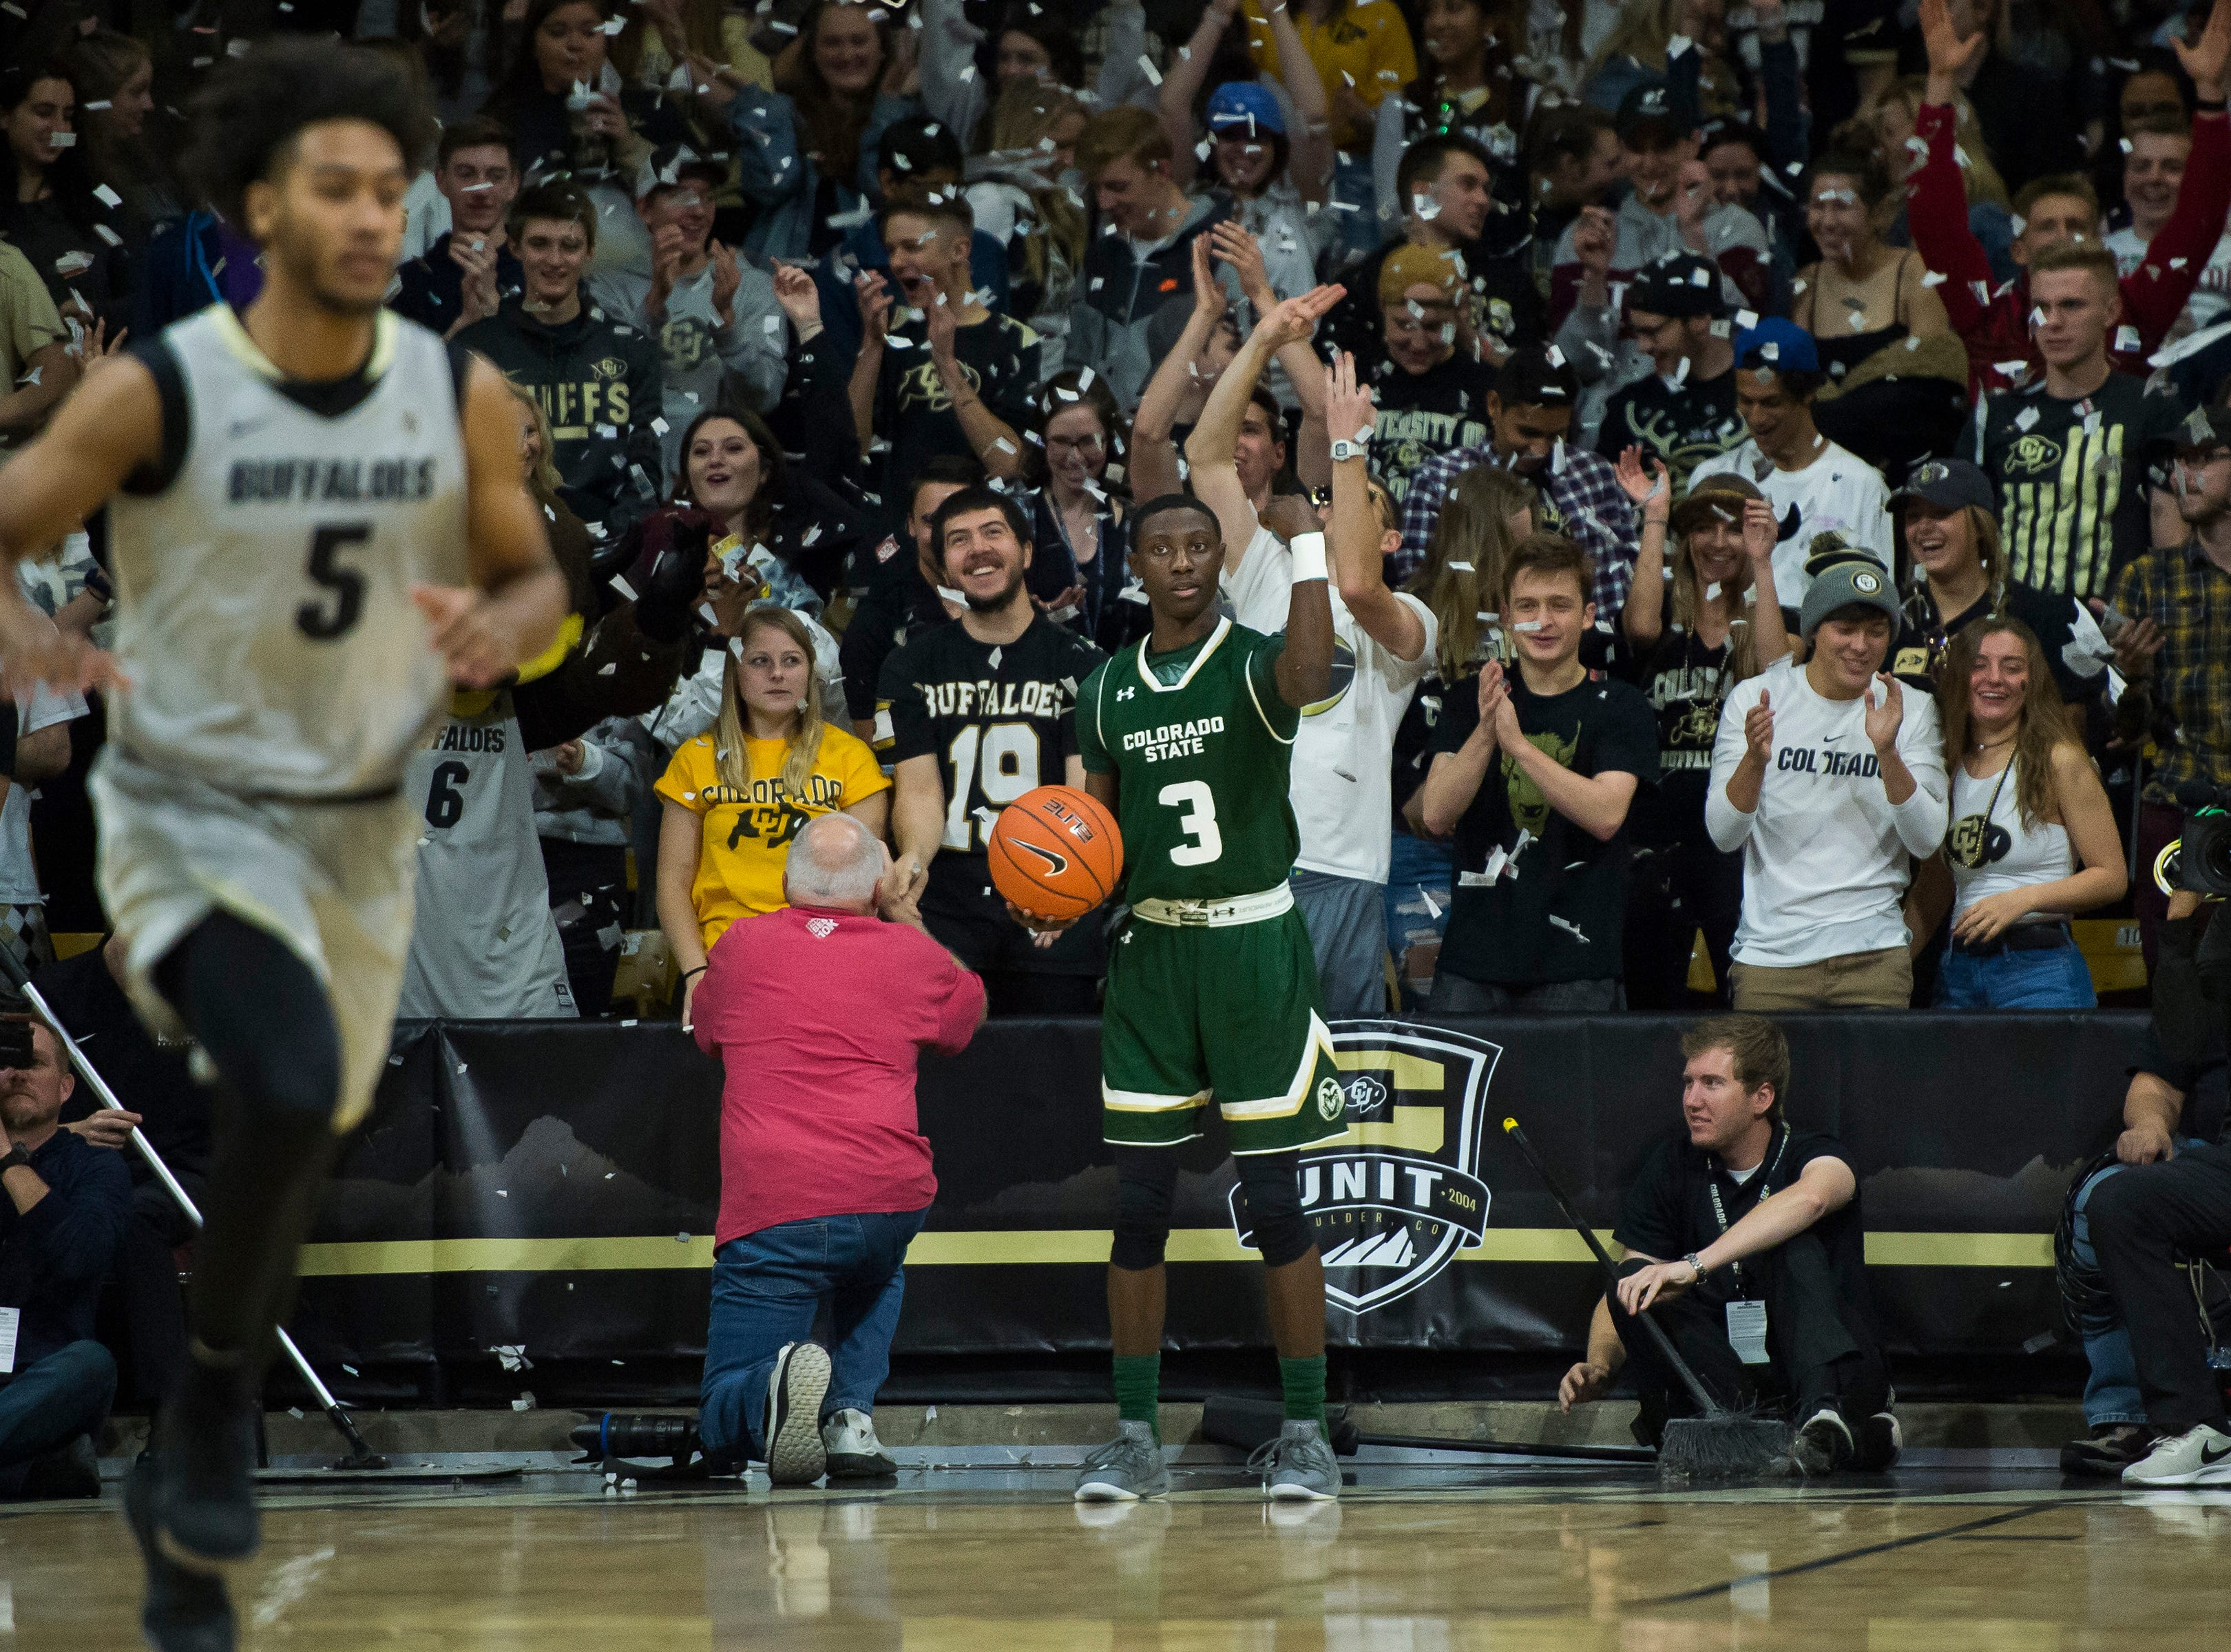 Confetti falls after the University of Colorado scores the opening pinots against Colorado State University on Saturday, Dec. 1, 2018, at the CU Event Center in Boulder, Colo.